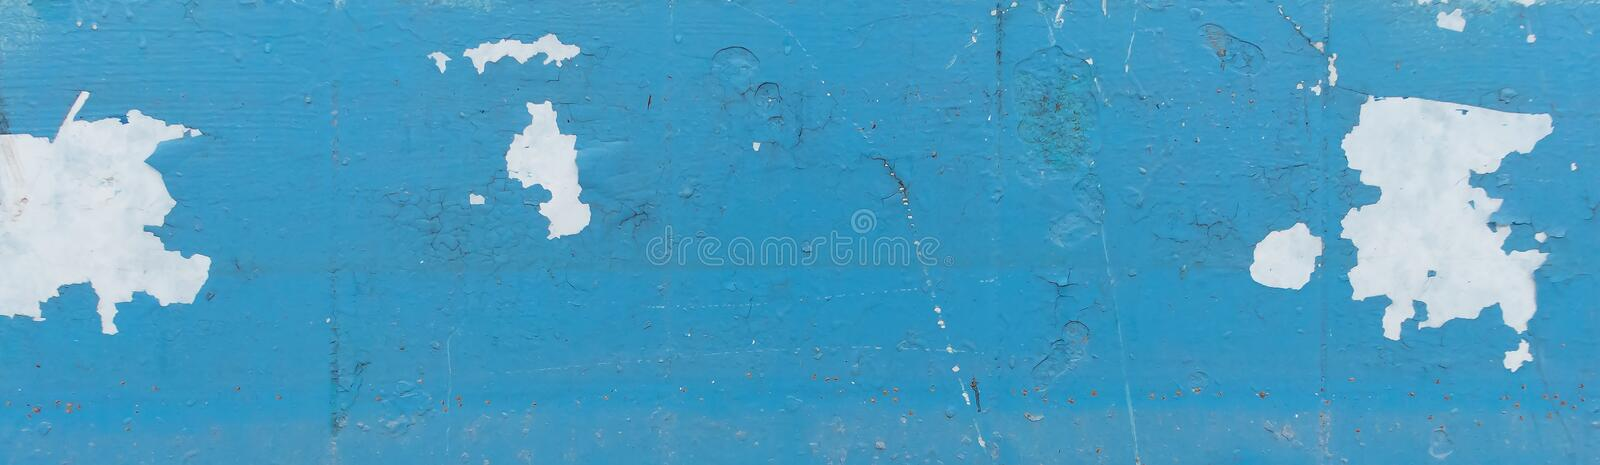 Wall with old peeling blue paint. Texture of old peeling paint, vintage graffiti background, it`s time to make repairs, cracked paint texture.  Clipart royalty free stock photos